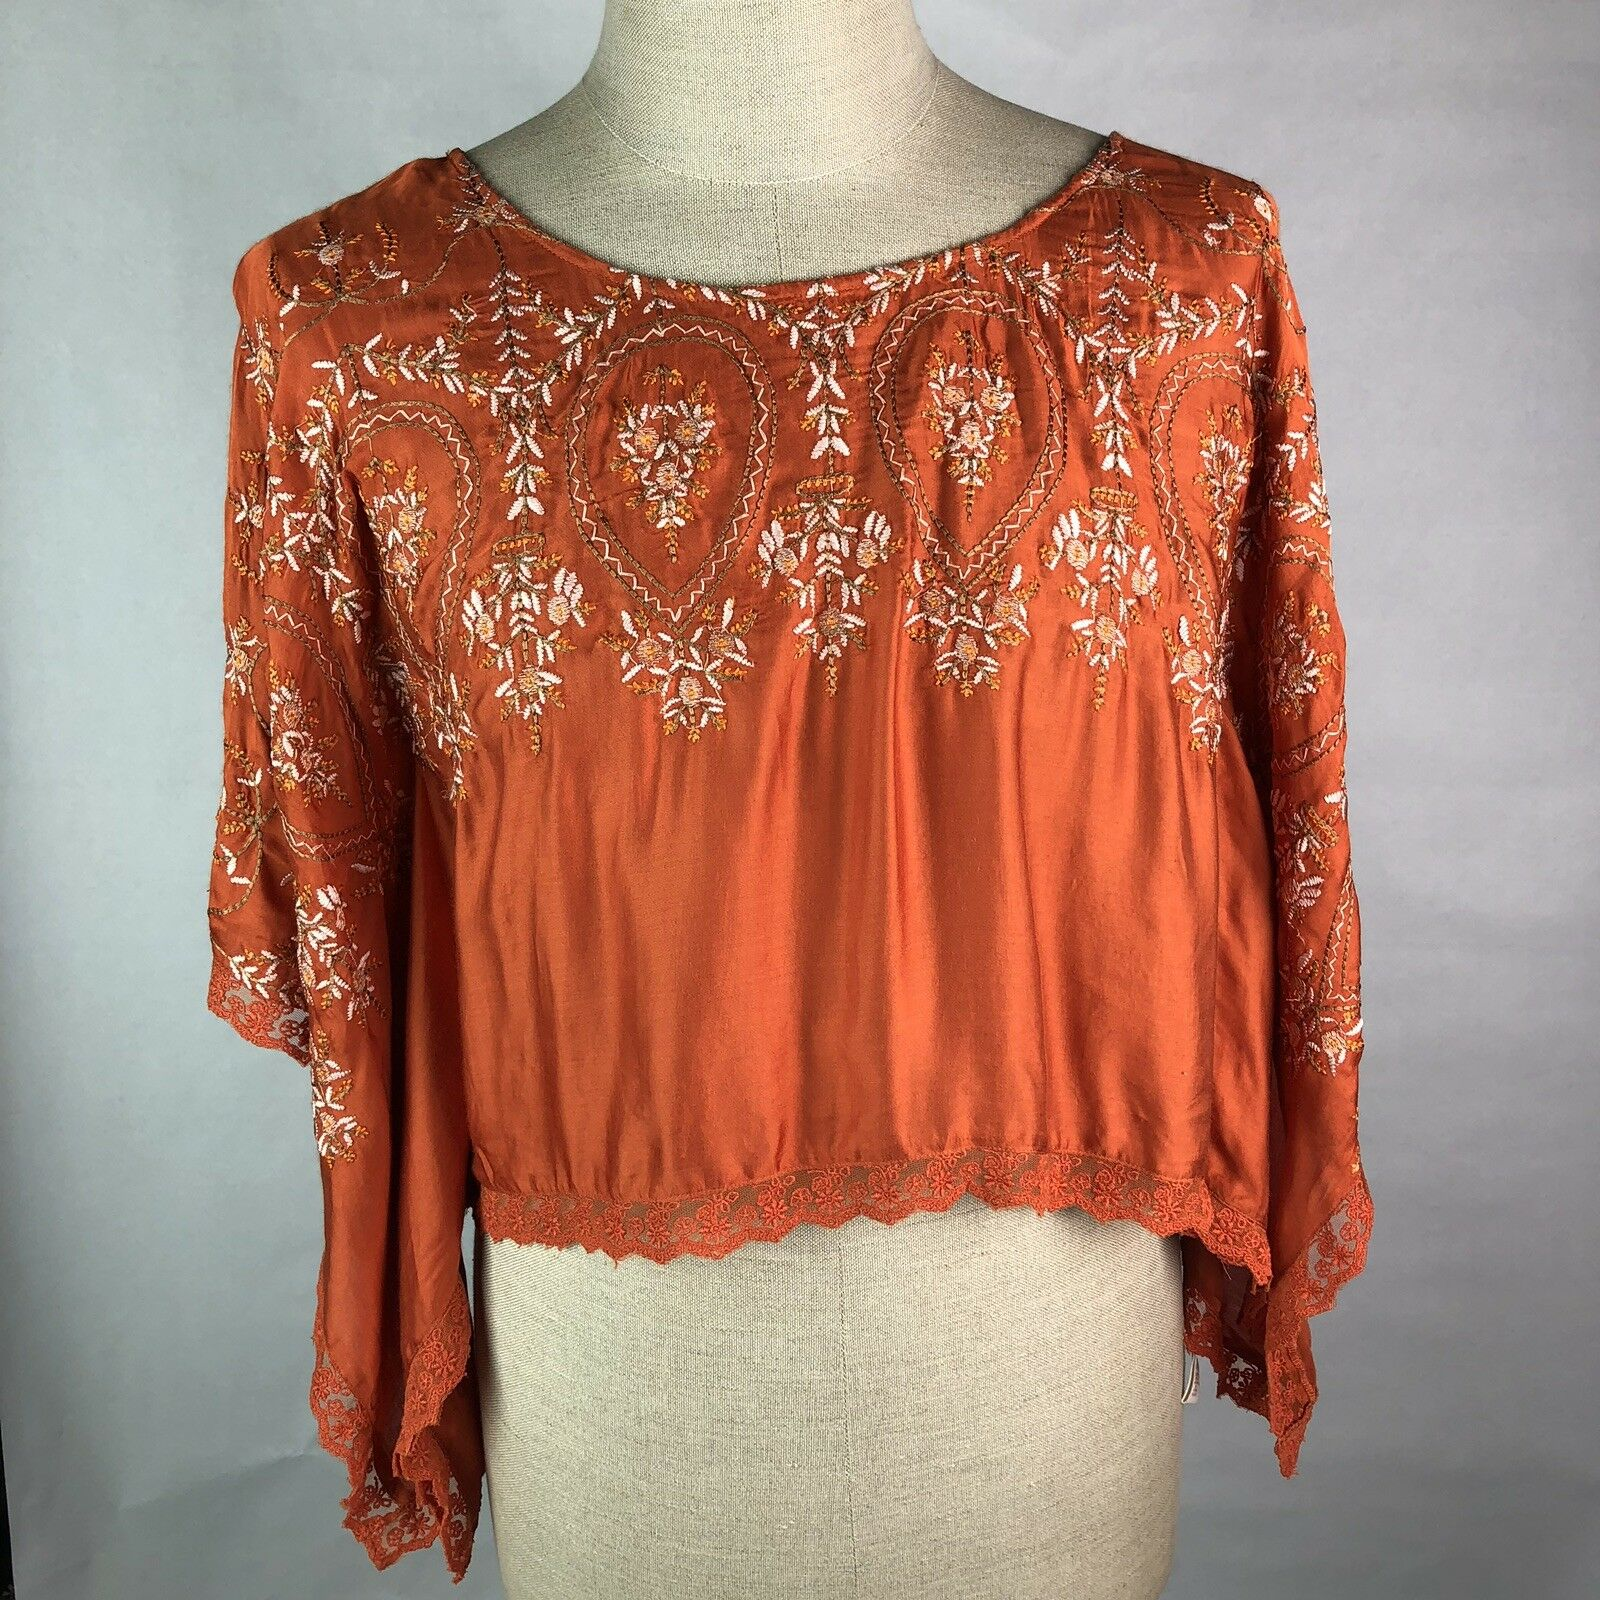 New Free People Boho Shirt S Tangerine Bat Wing Sleeve Emroidered F426T016 Cc